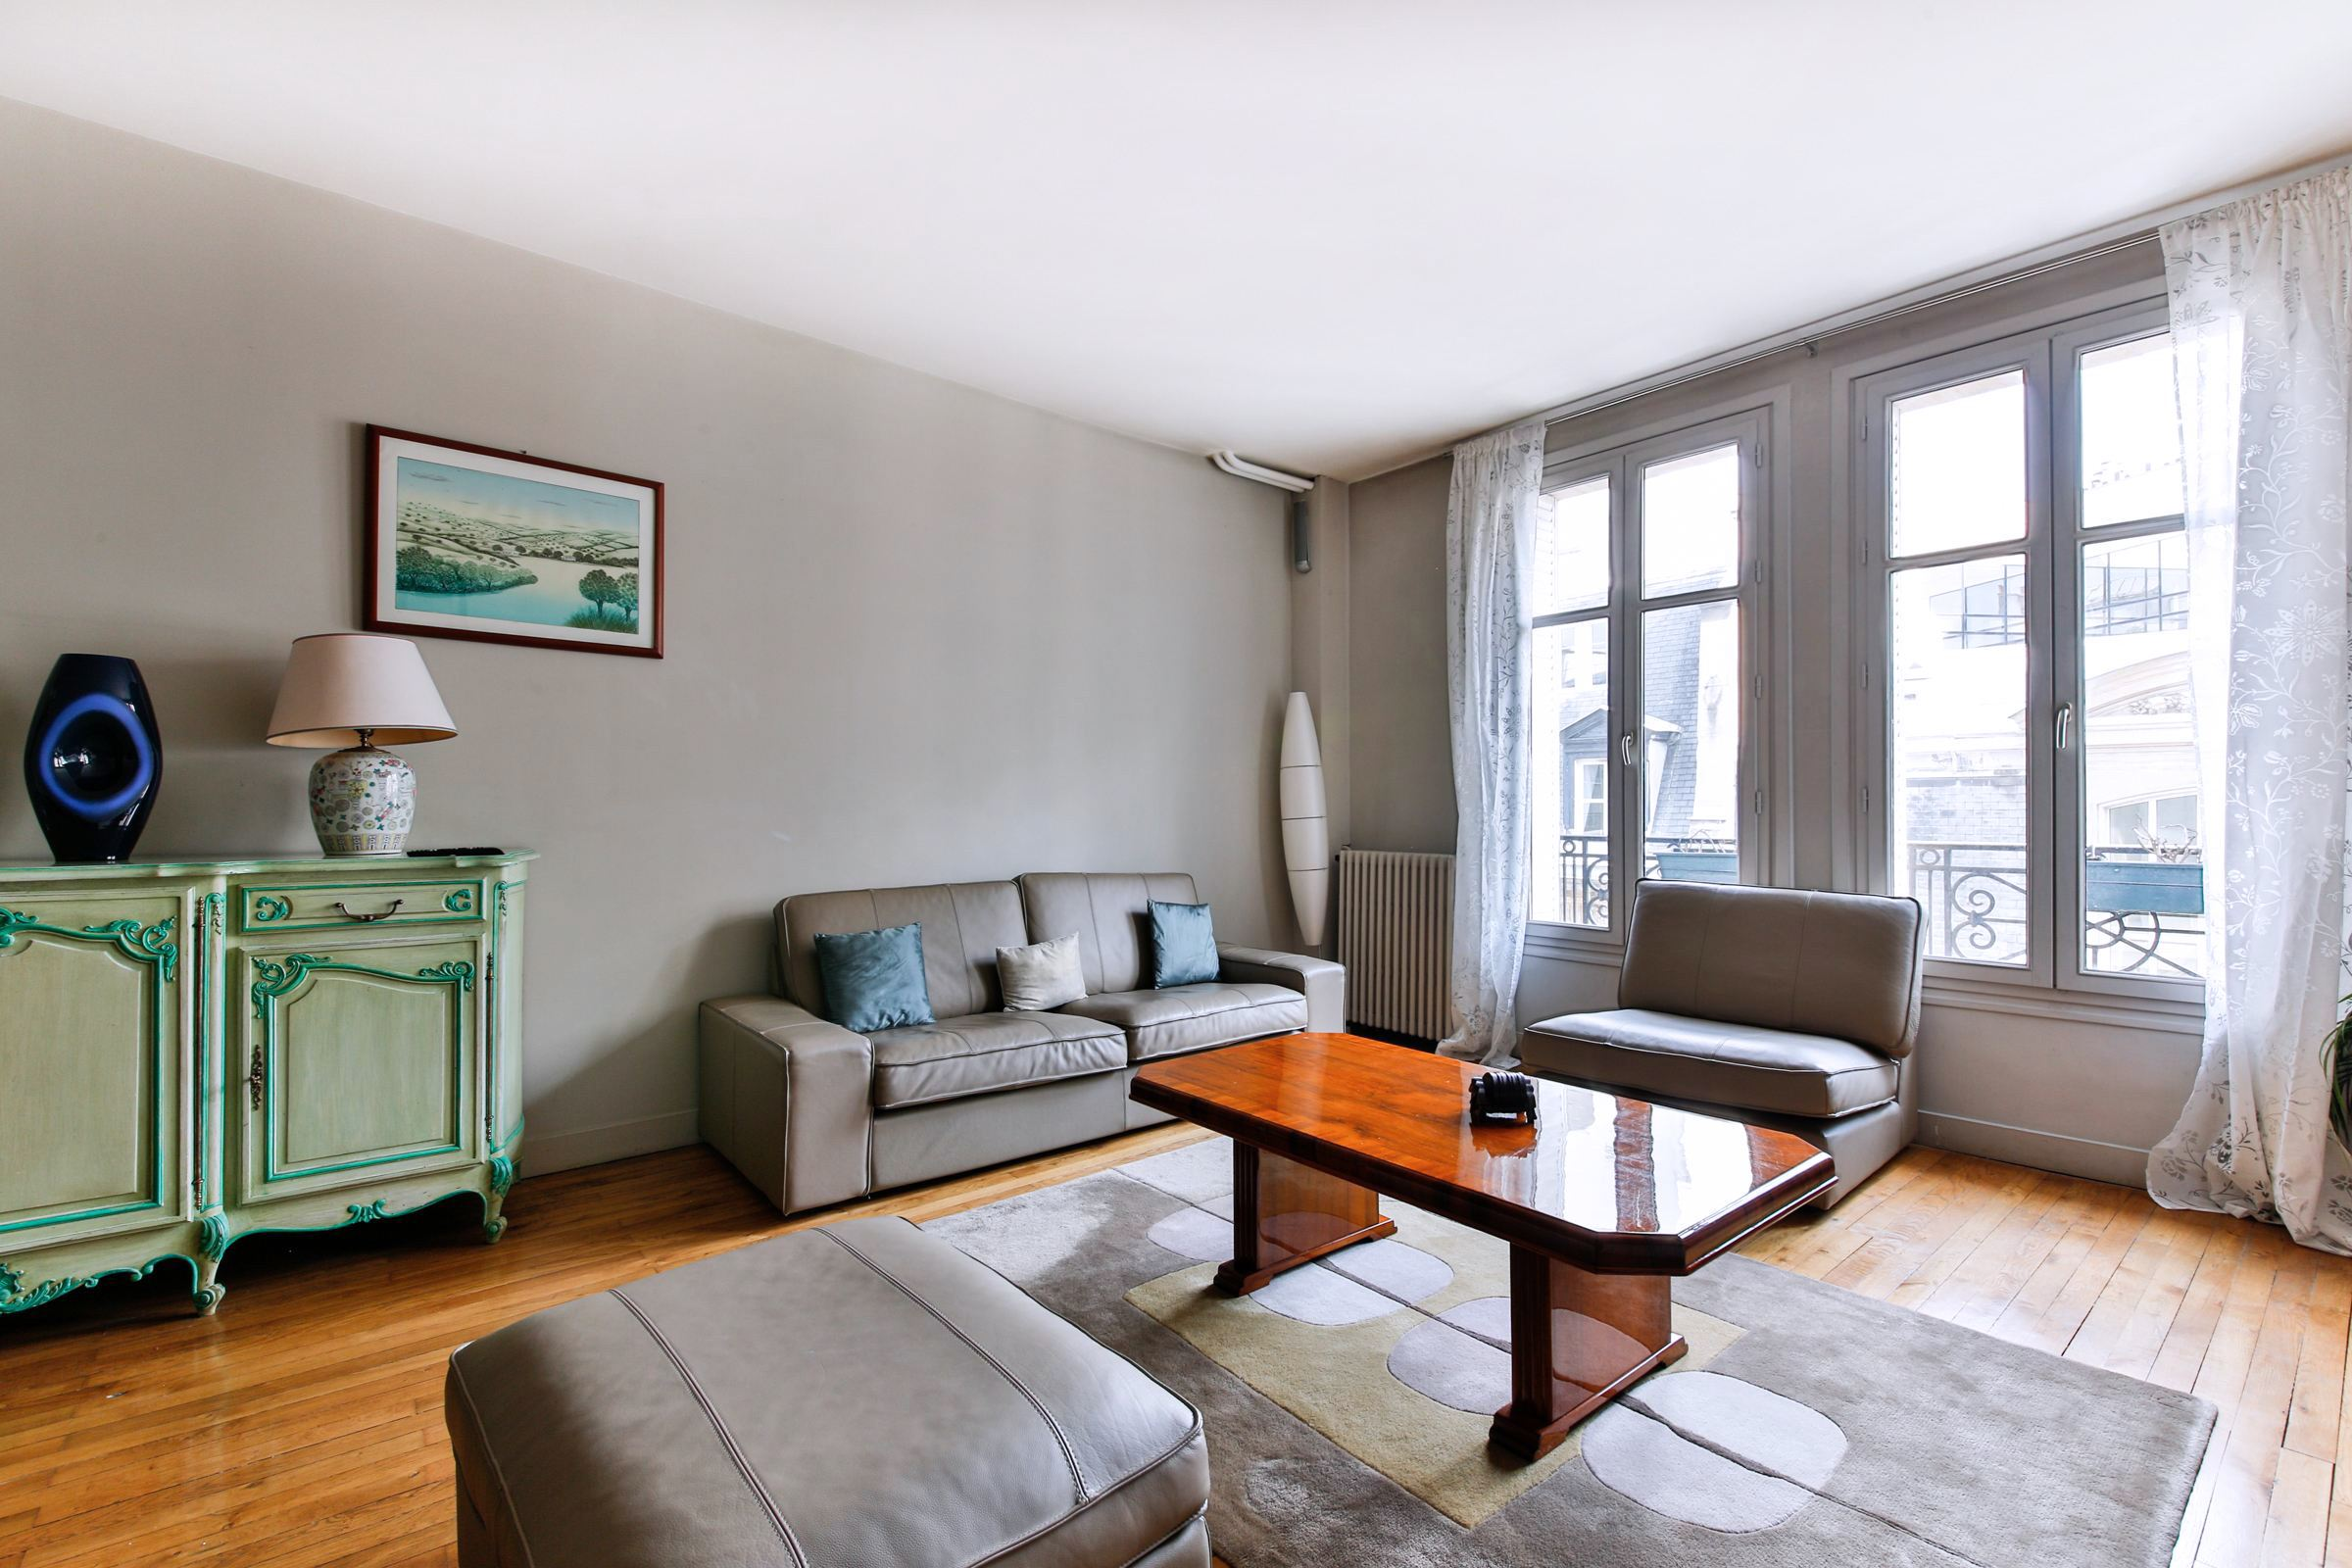 Property For Sale at Paris 8 - Parc Monceau . Apartment. Excellent condition